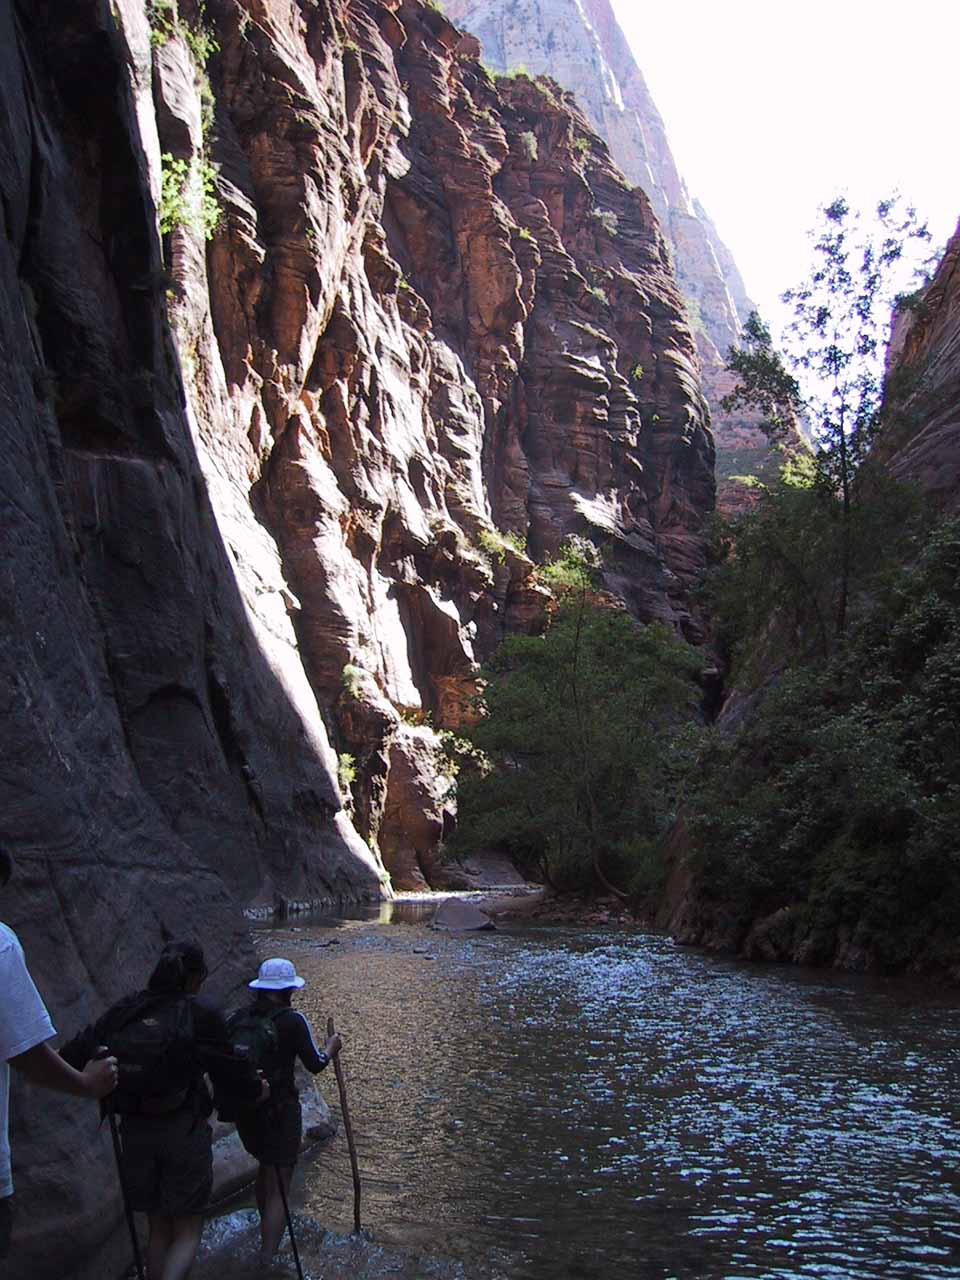 Now we were wading up the cold Virgin River on that 2001 trip